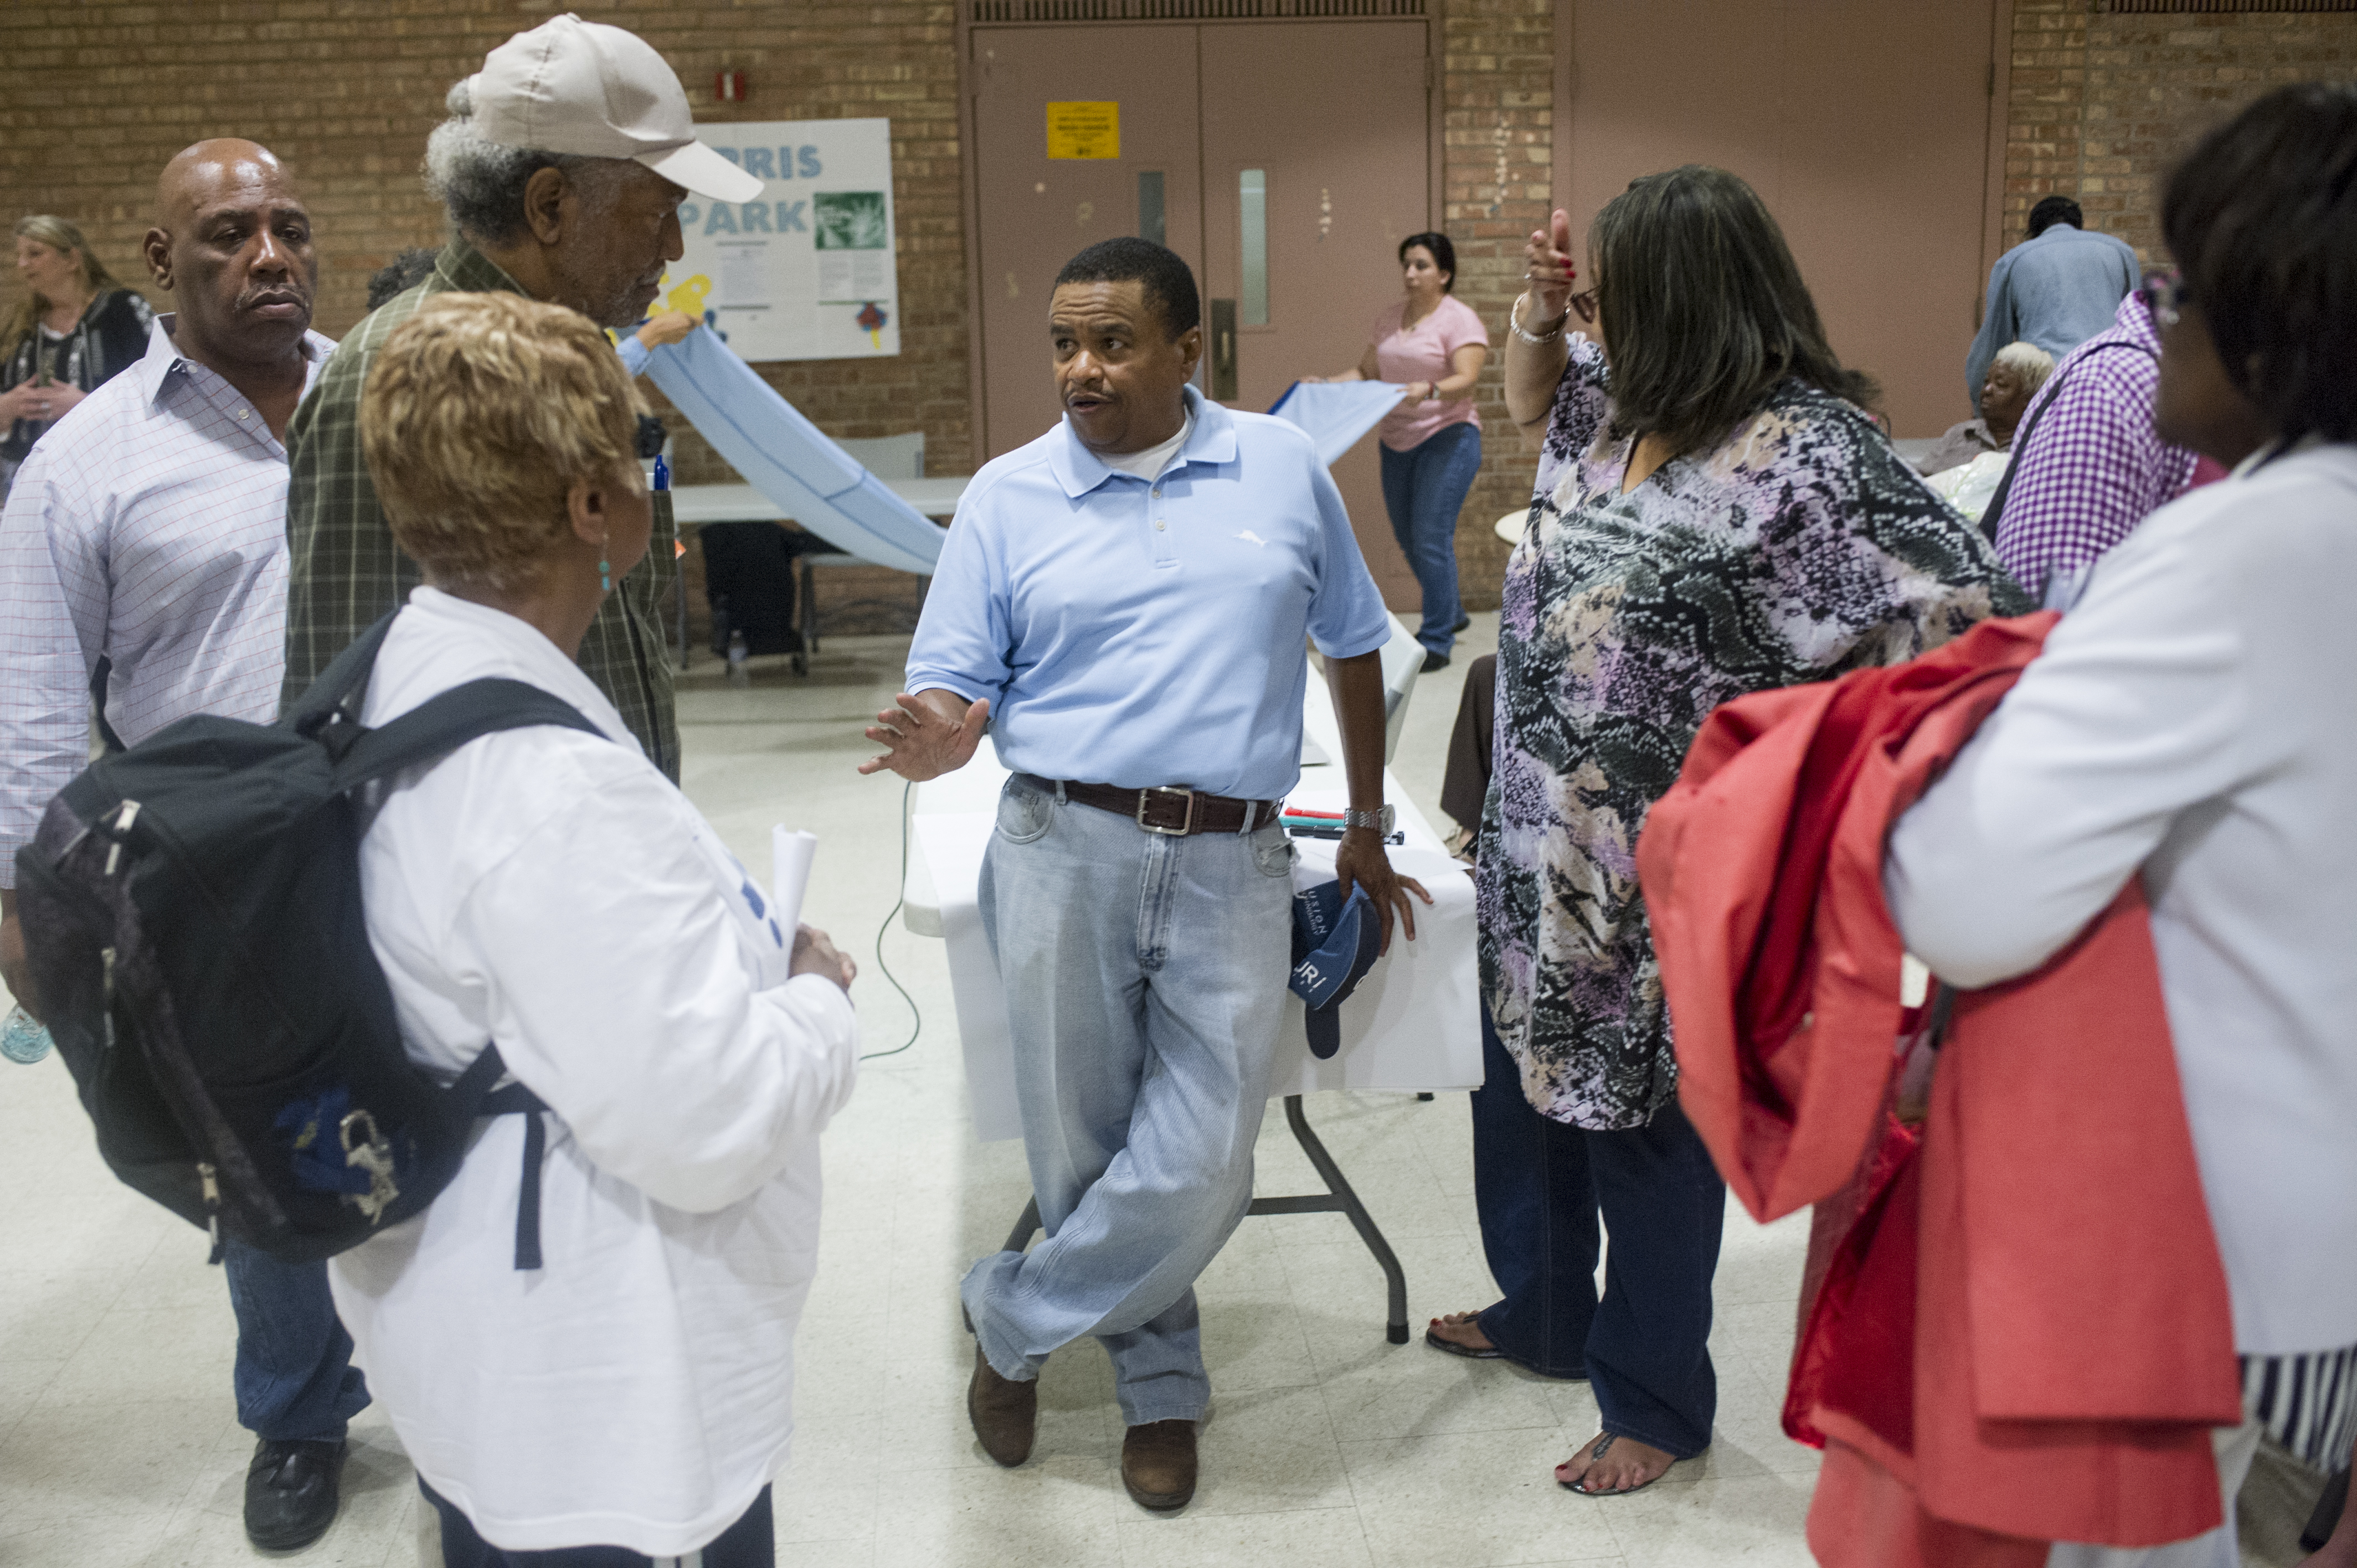 Obama Library South Side CBA Coalition Meeting - June 28, 2017 #012